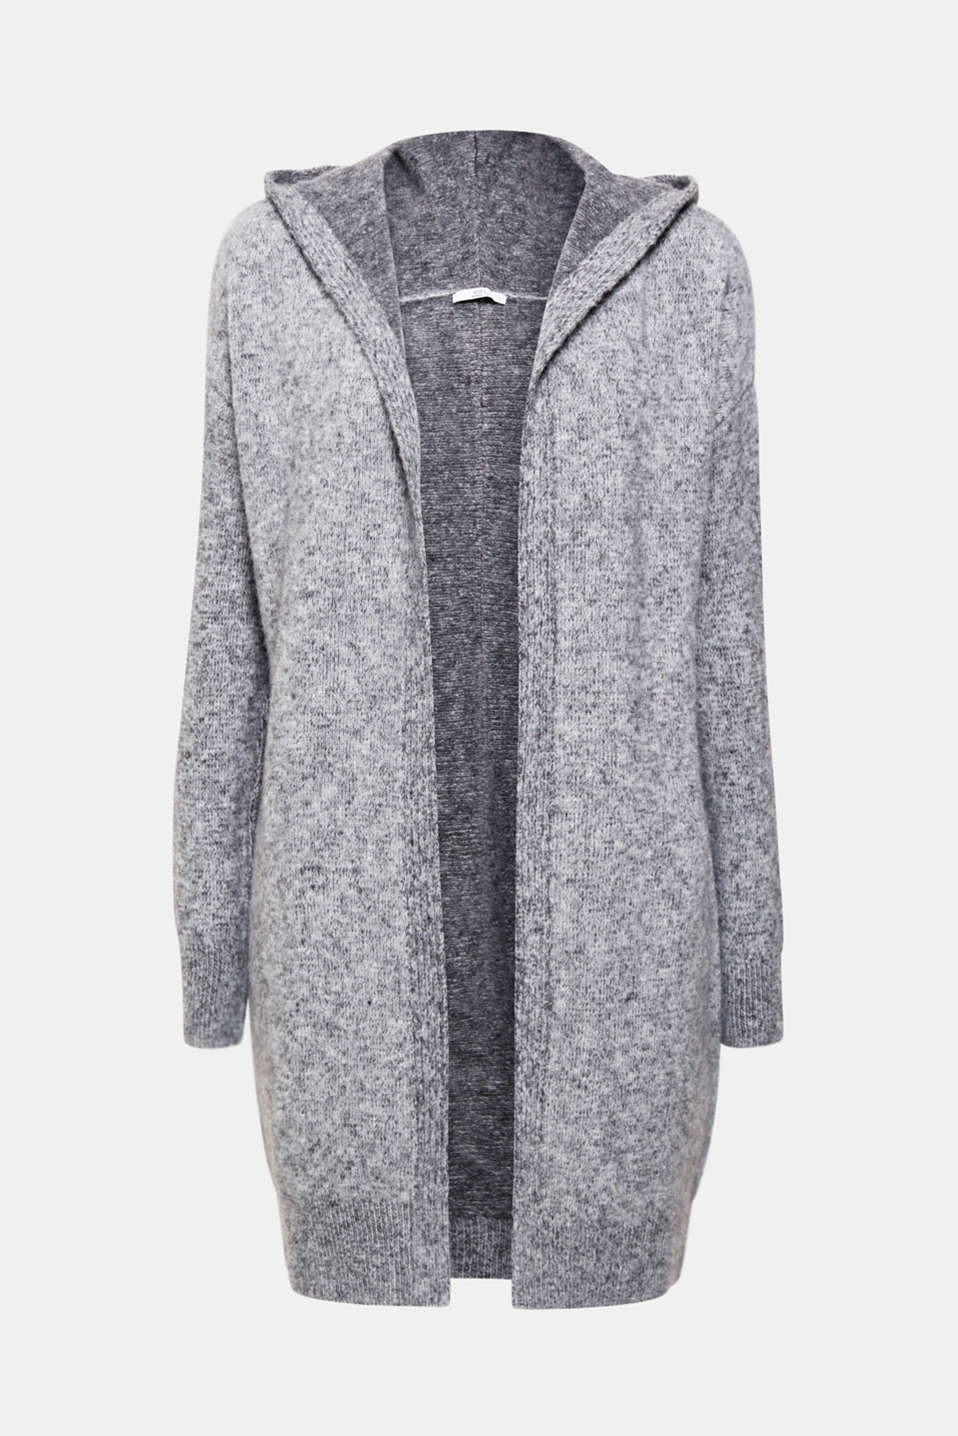 Wrap up: in this open long cardigan made of voluminous, soft knit fabric with a fashionable melange finish and a casual hood!